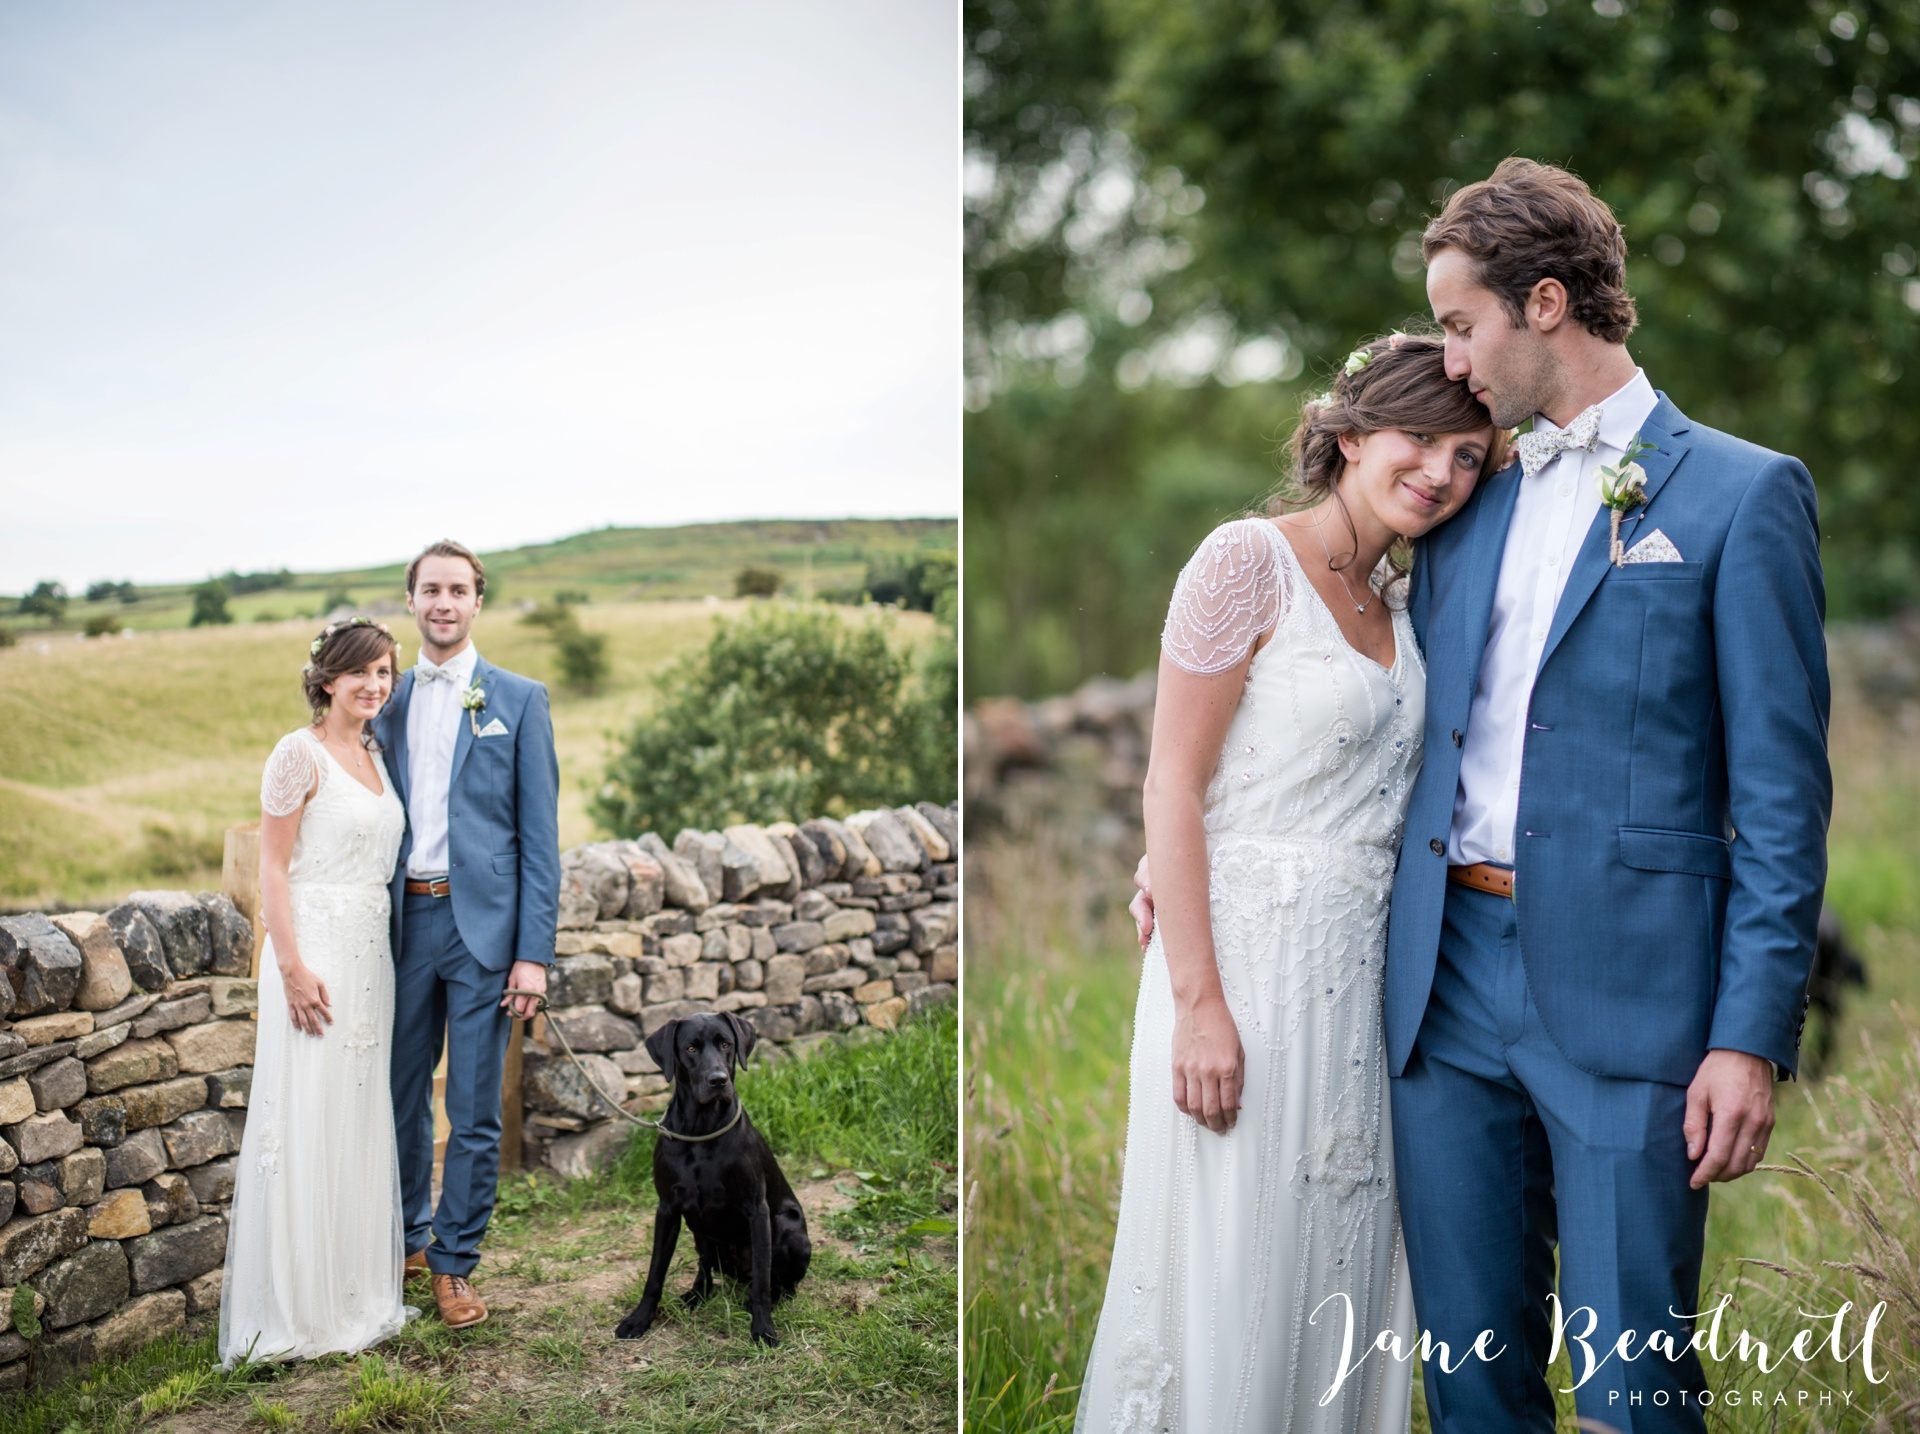 Jane Beadnell fine art wedding photographer Leeds_0134